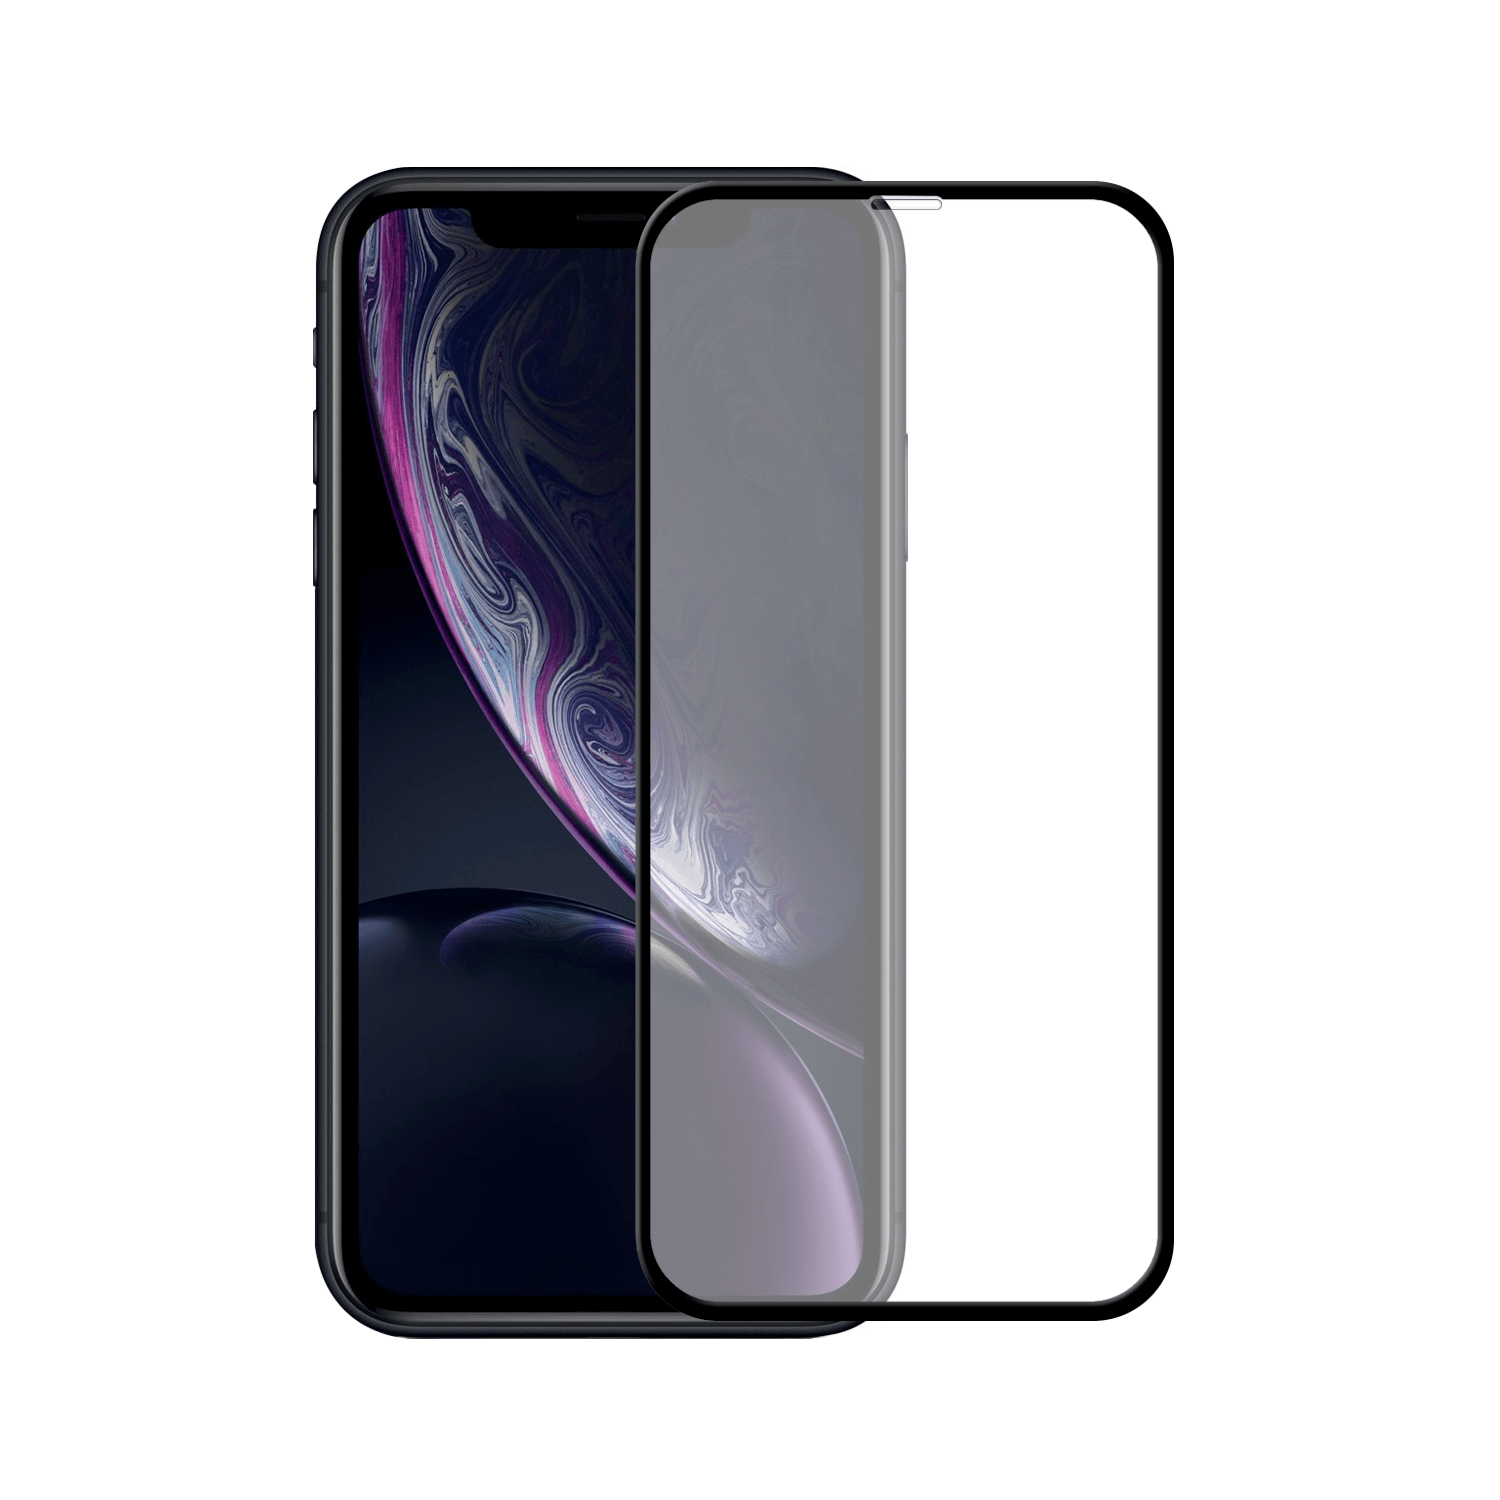 gehard-glas-screenprotector-iphone-xr-edge-to-edge